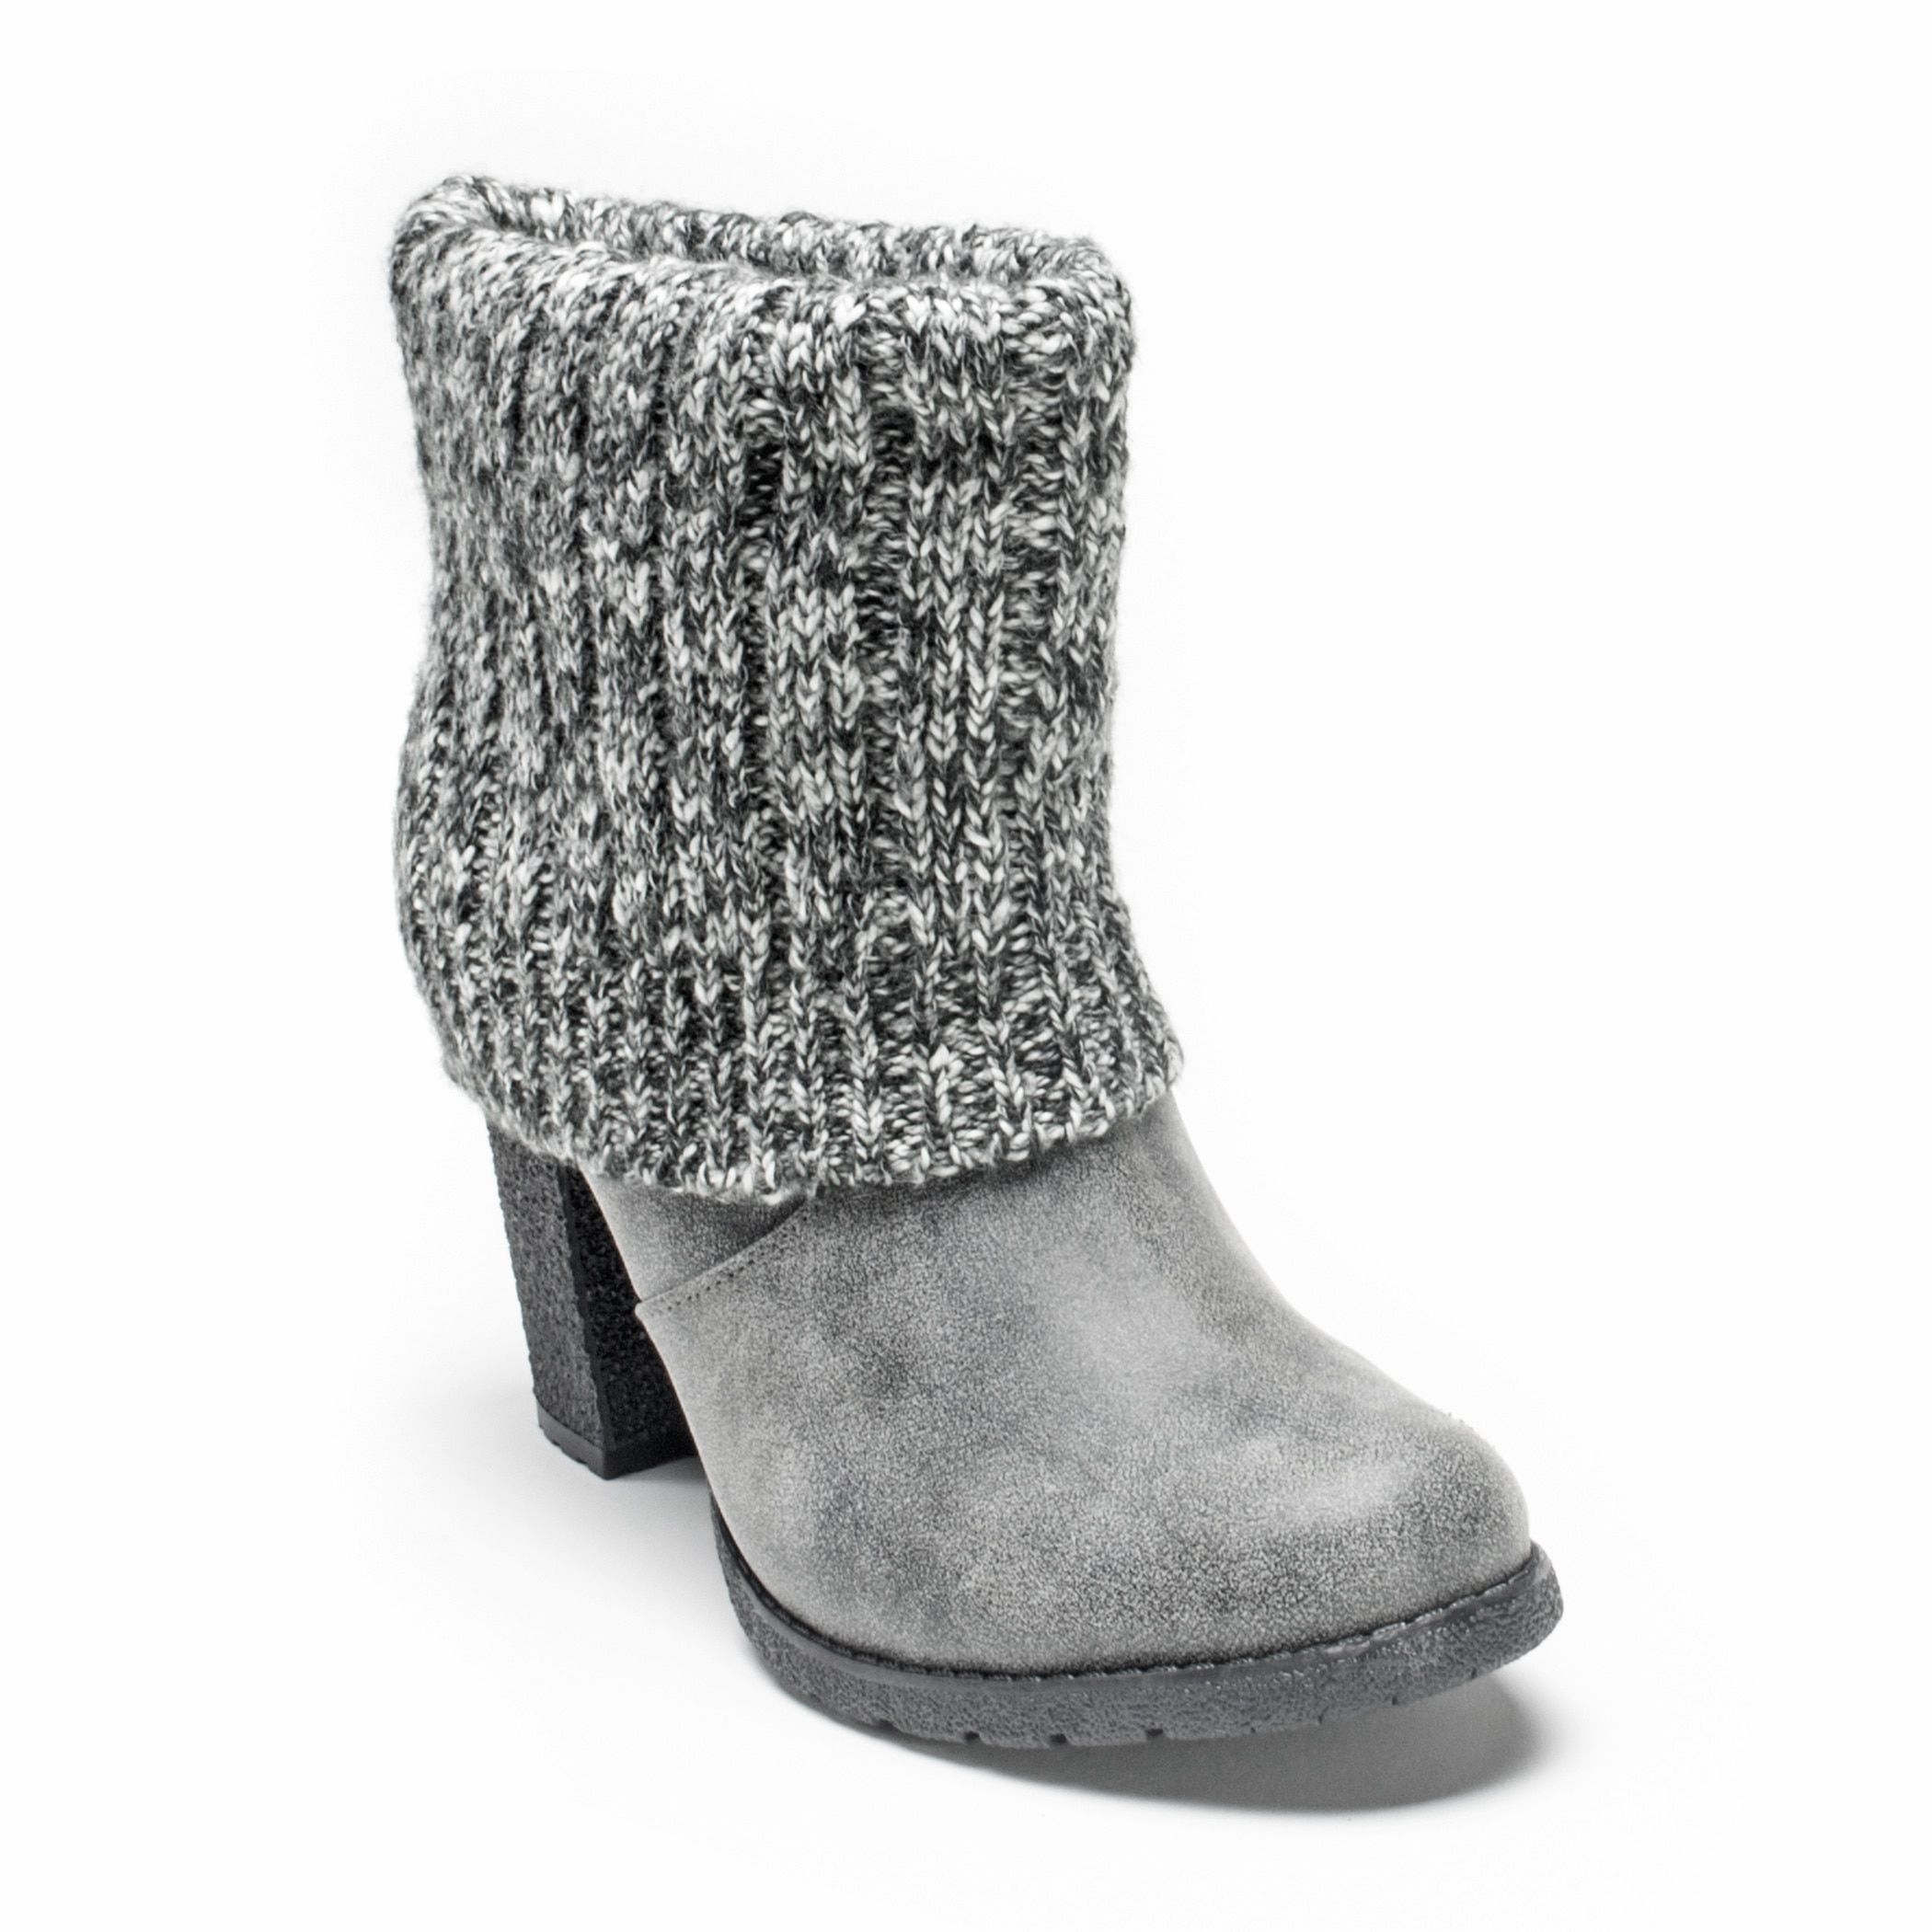 MUK LUKS Chris Boot(Women's) -Moccasin Shipping Discount Authentic Cheap Price Free Shipping Low Cost Sale Online Geniue Stockist For Sale 1cVuBhR